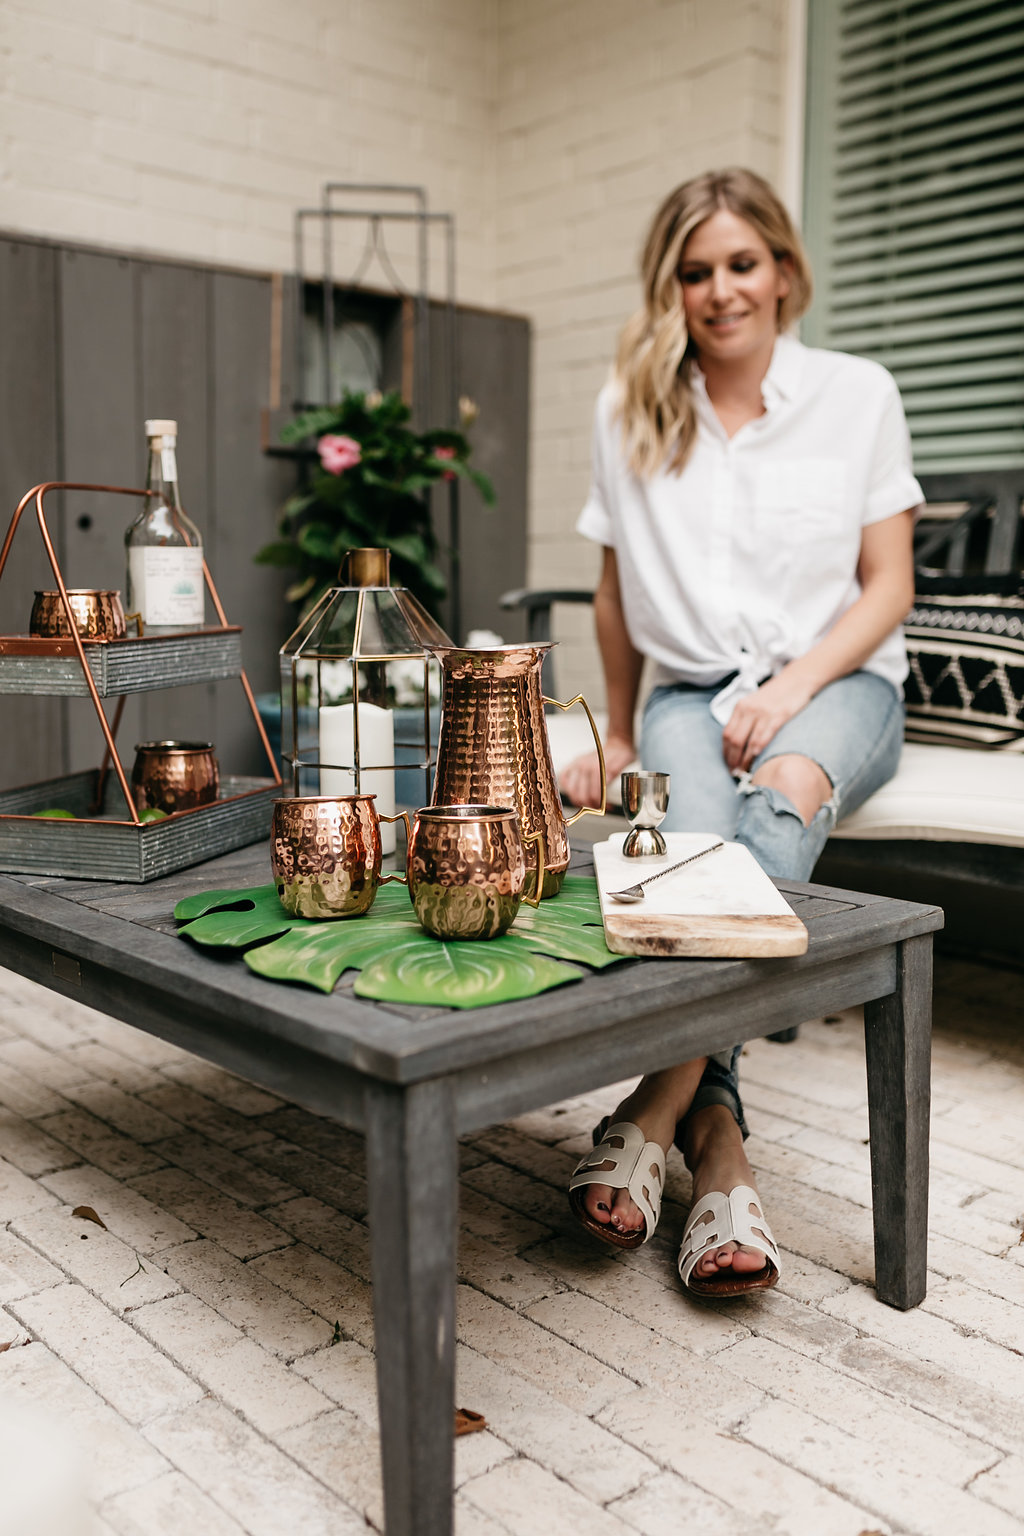 TOP PIER 1 PATIO ACCESSORIES | One Small Blonde